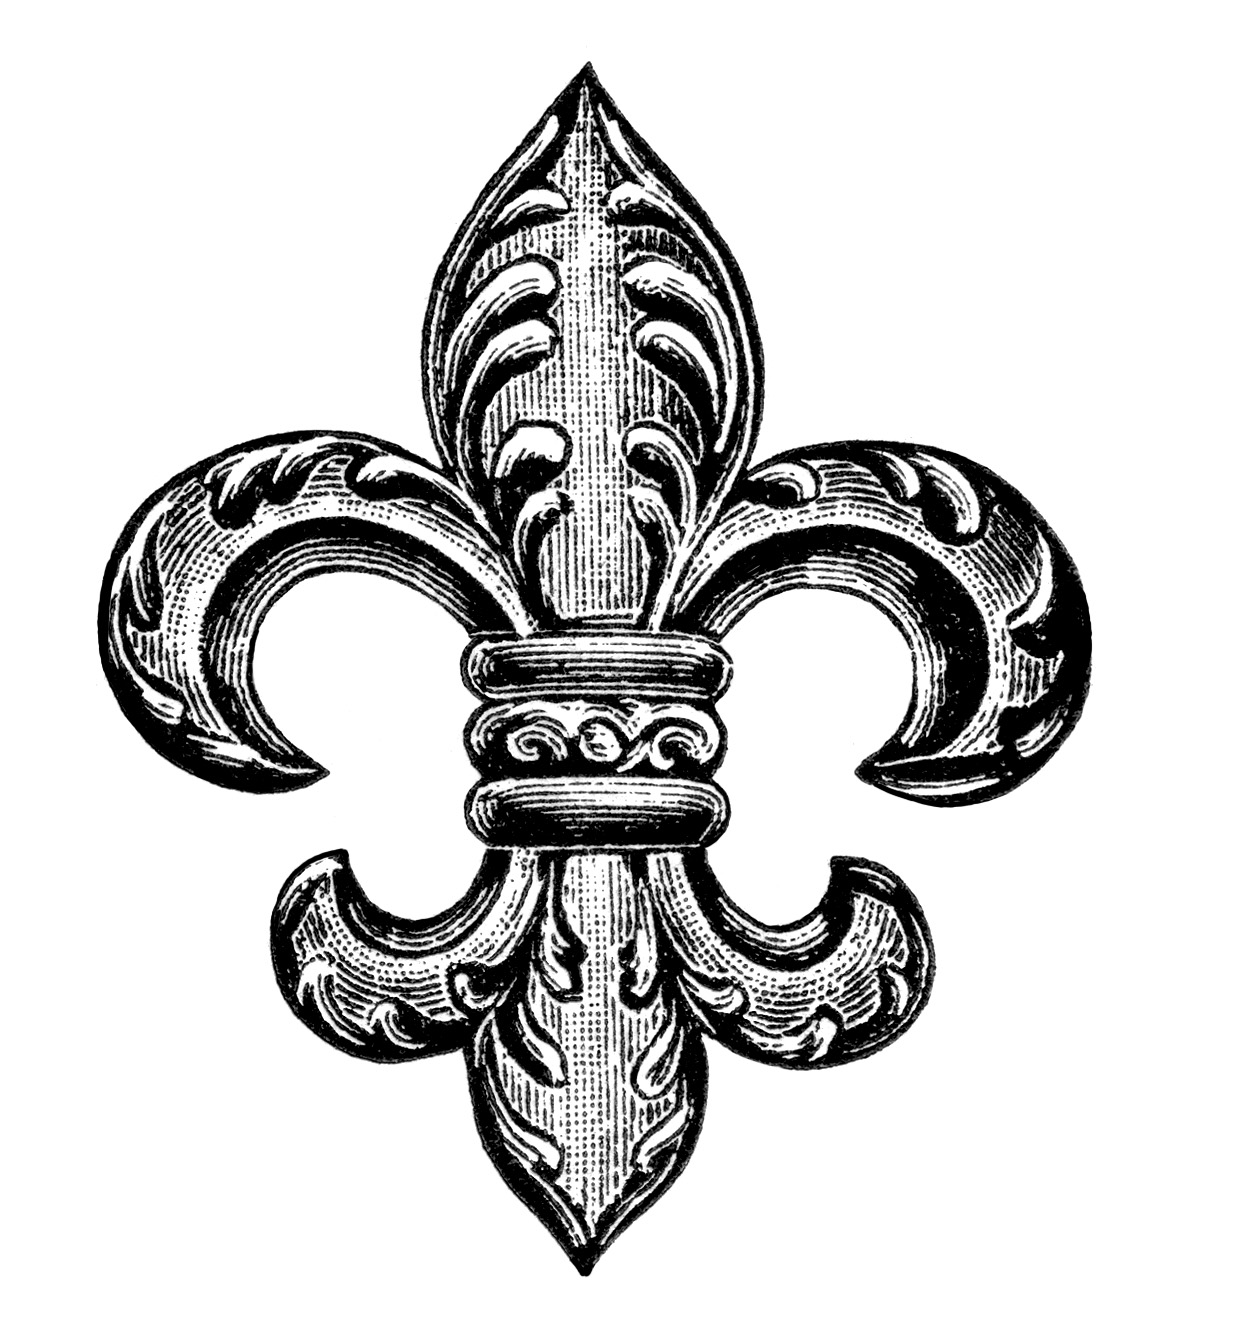 hight resolution of fleur de lis gif photograph massimages